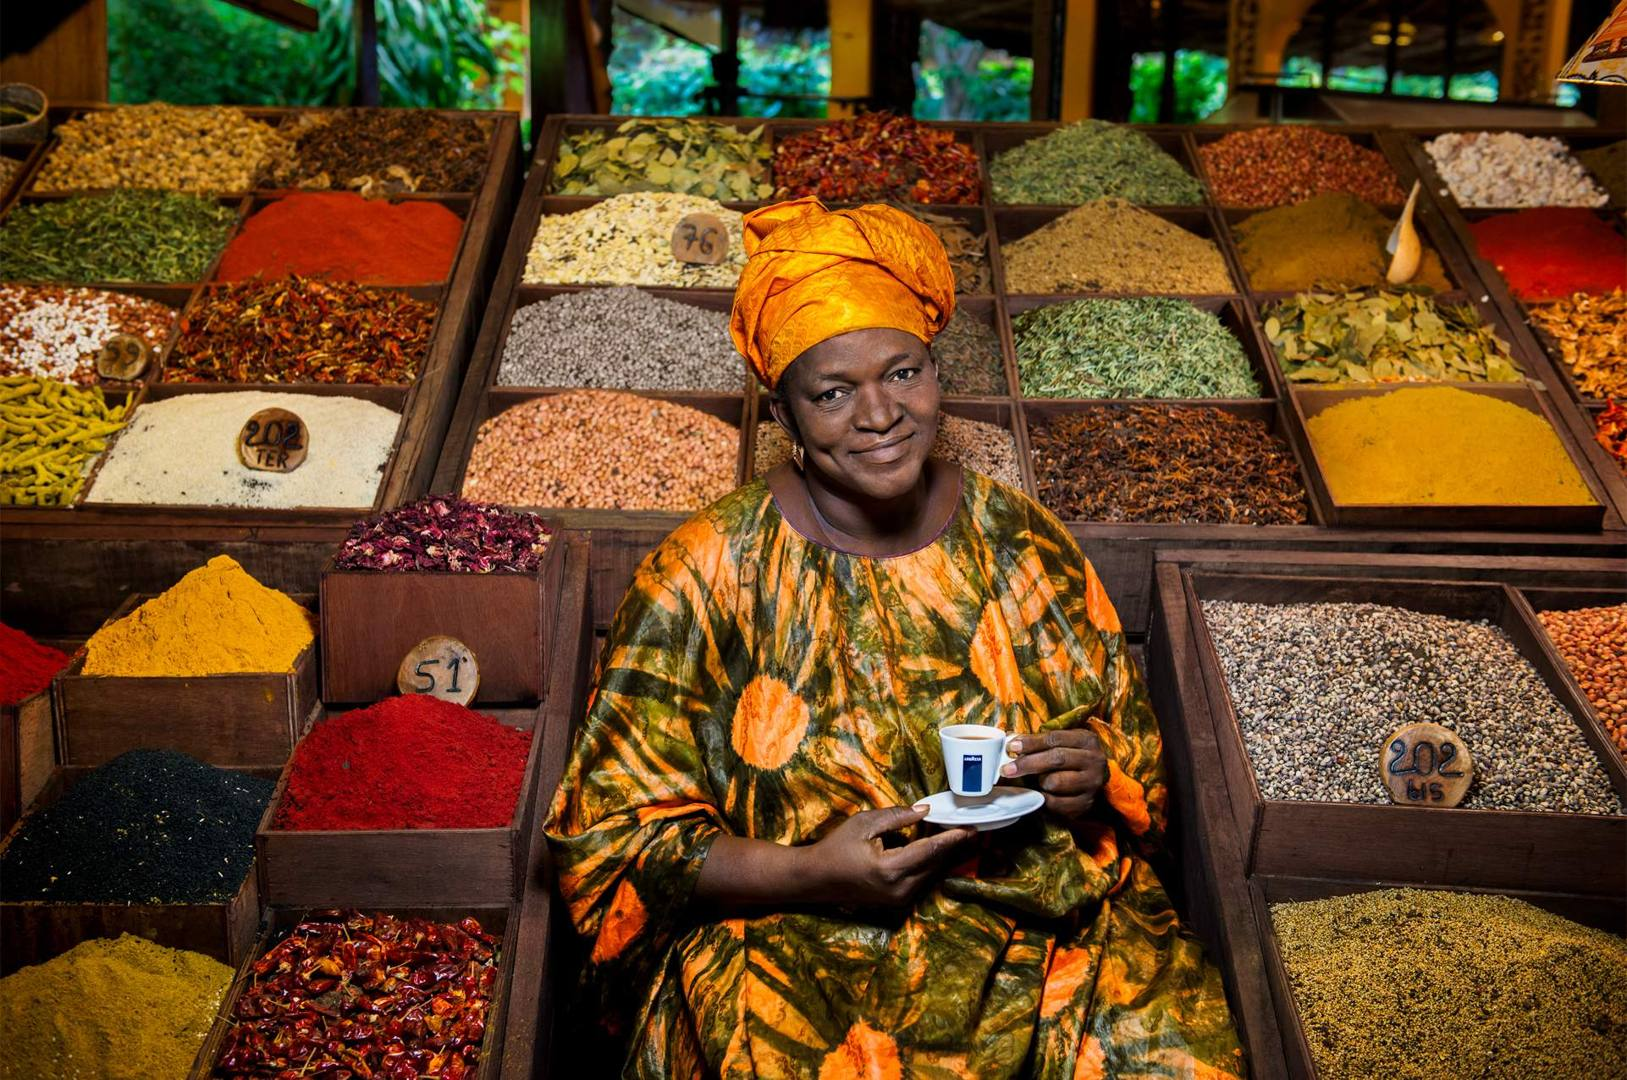 'Soul Ingredients' - Mayé Ndour, a chef and restaurant owner in Senegal, is a champion of cereals and local product